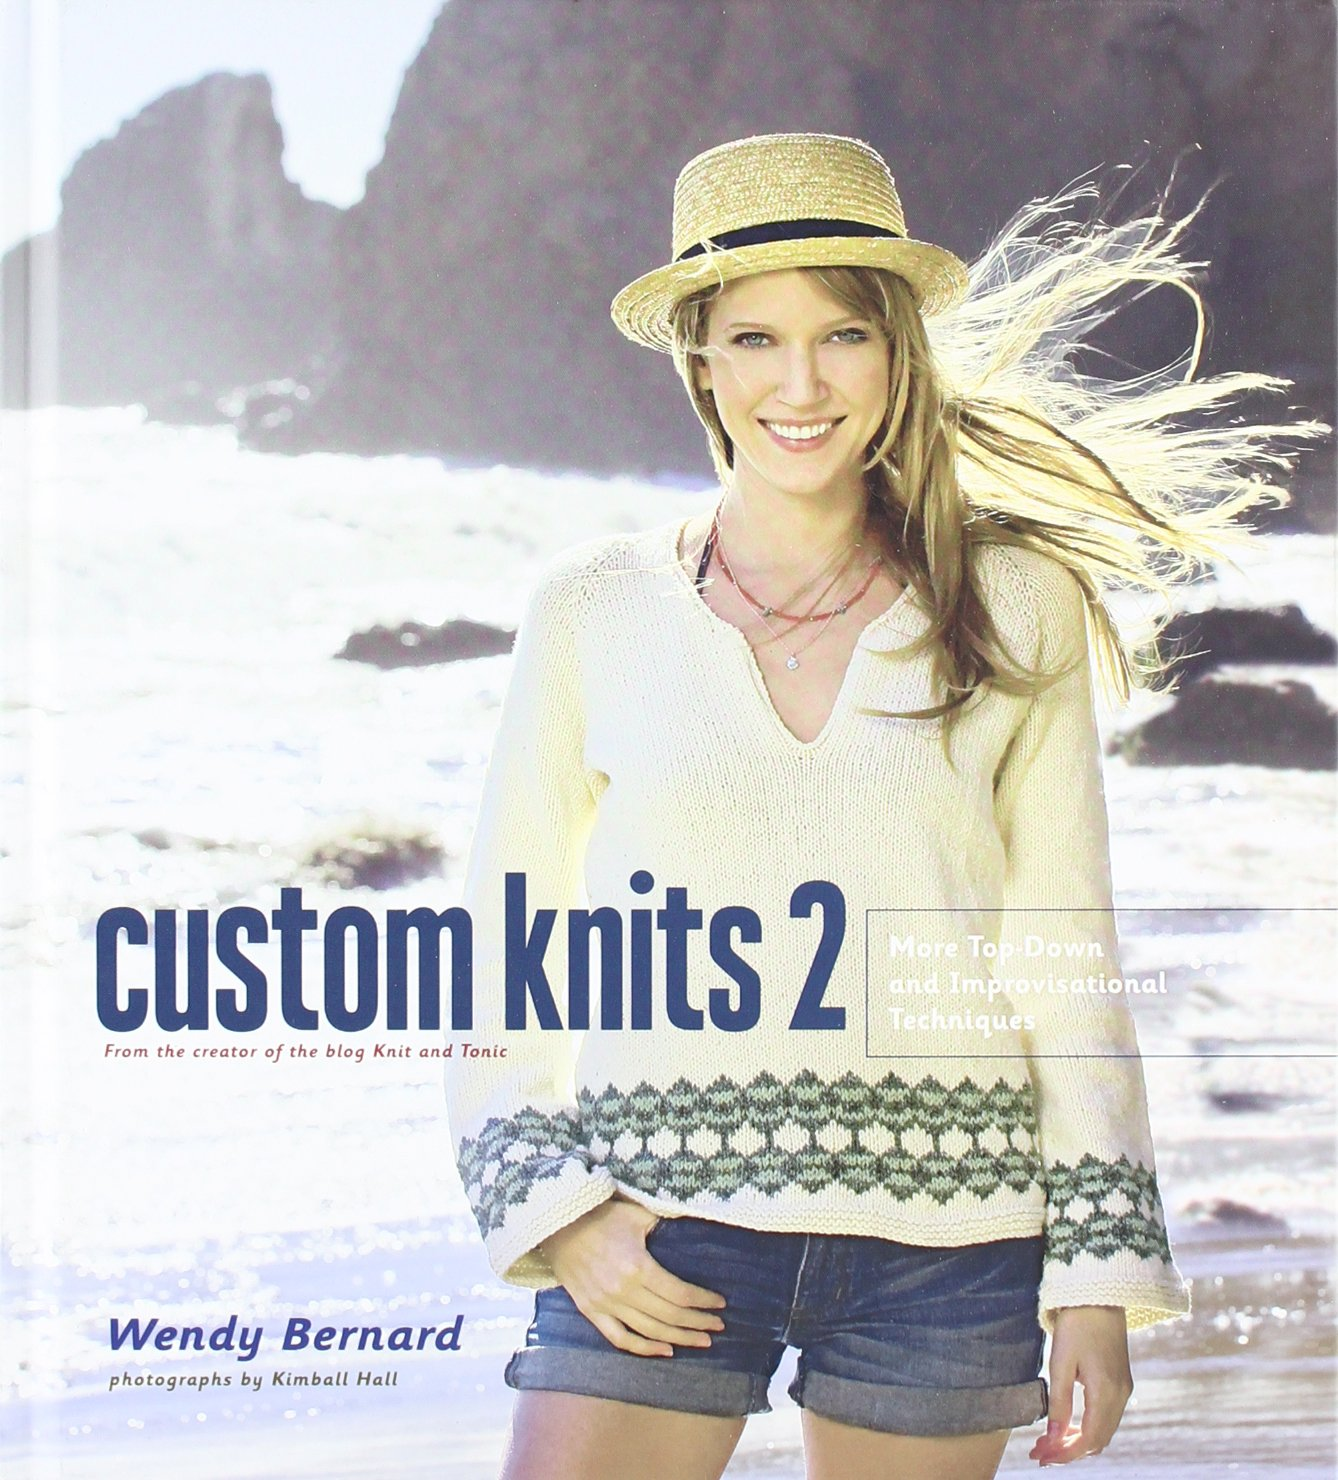 Custom Knits 2: More Top-Down and Improvisational Techniques